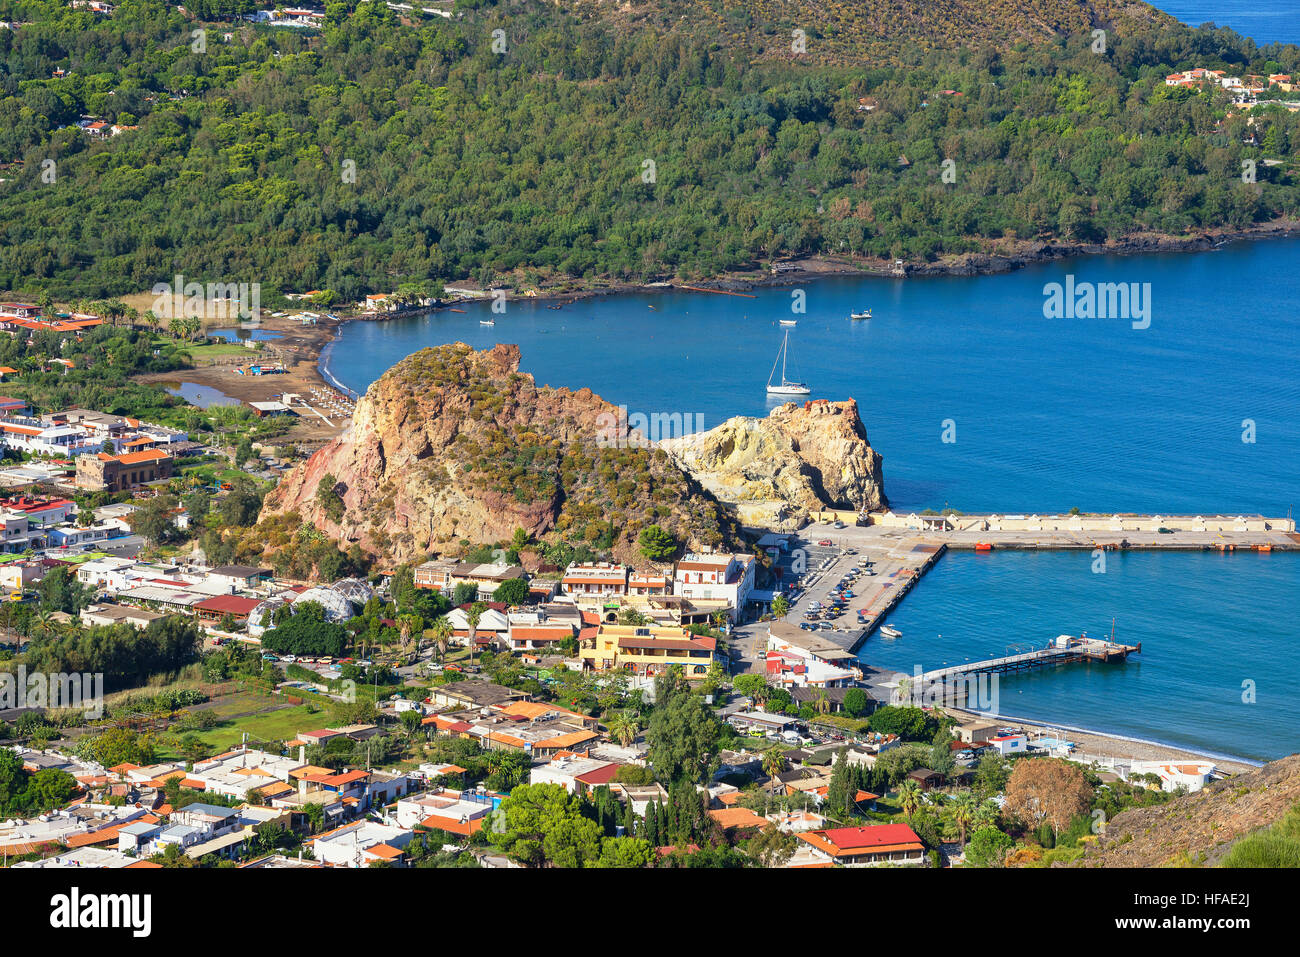 View of Vulcanello and Porto di Levante, Lipari Island at back, Aeolian Islands, Sicily, Italy - Stock Image